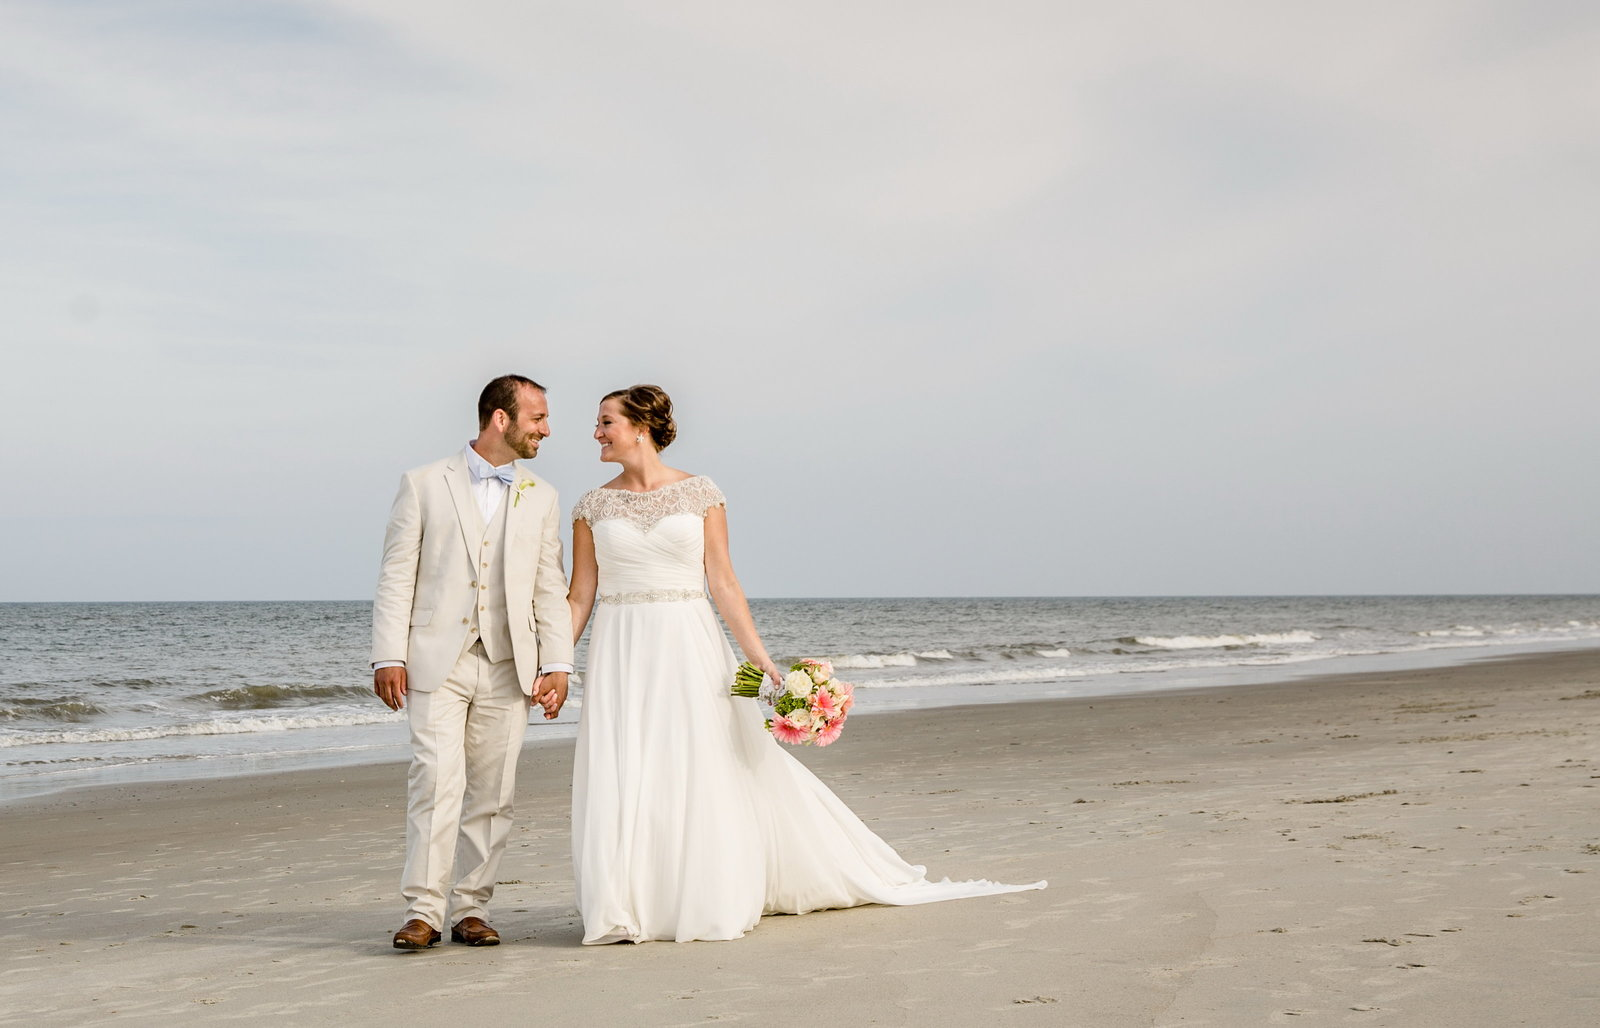 Bobbi Brinkman Photography, Tybee Island Wedding